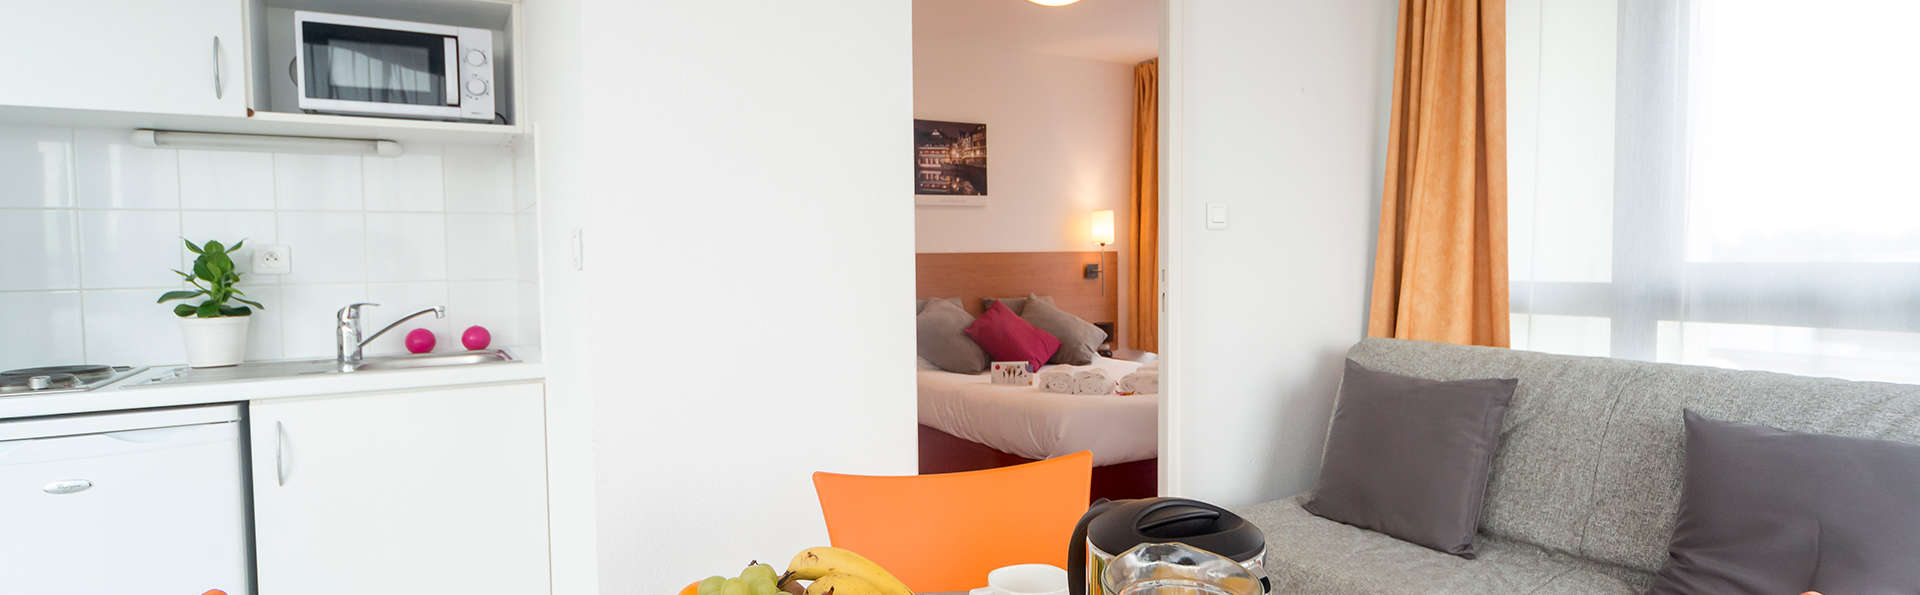 CERISE Strasbourg - EDIT_apartment2.jpg